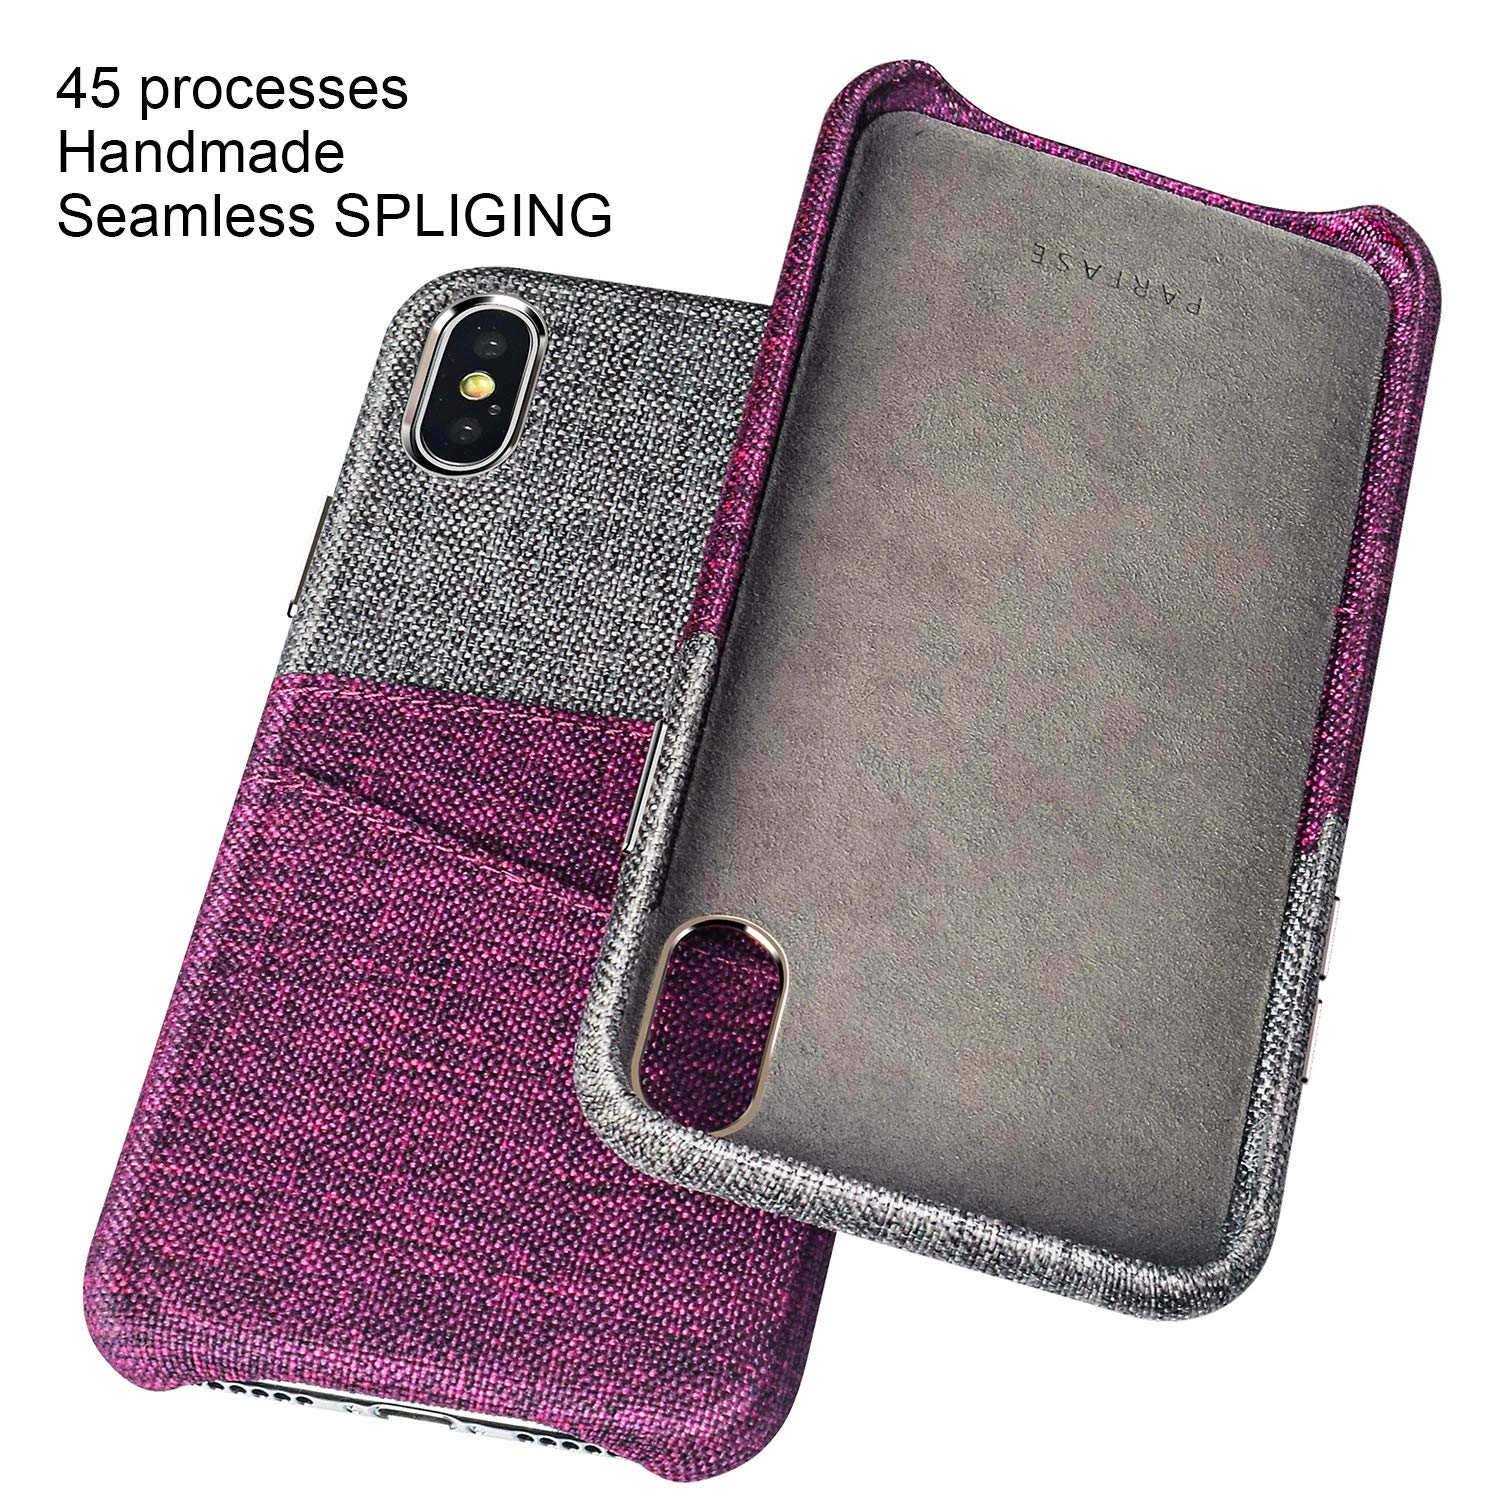 PARFASE iPhone Xs Max Wallet Case, iPhone Xs Max Case Soft Cloth Fabric Case with 2 ID Credit Card Holder Slots for Apple iPhone Xs Max 6.5 inch (Gray/Rufous)